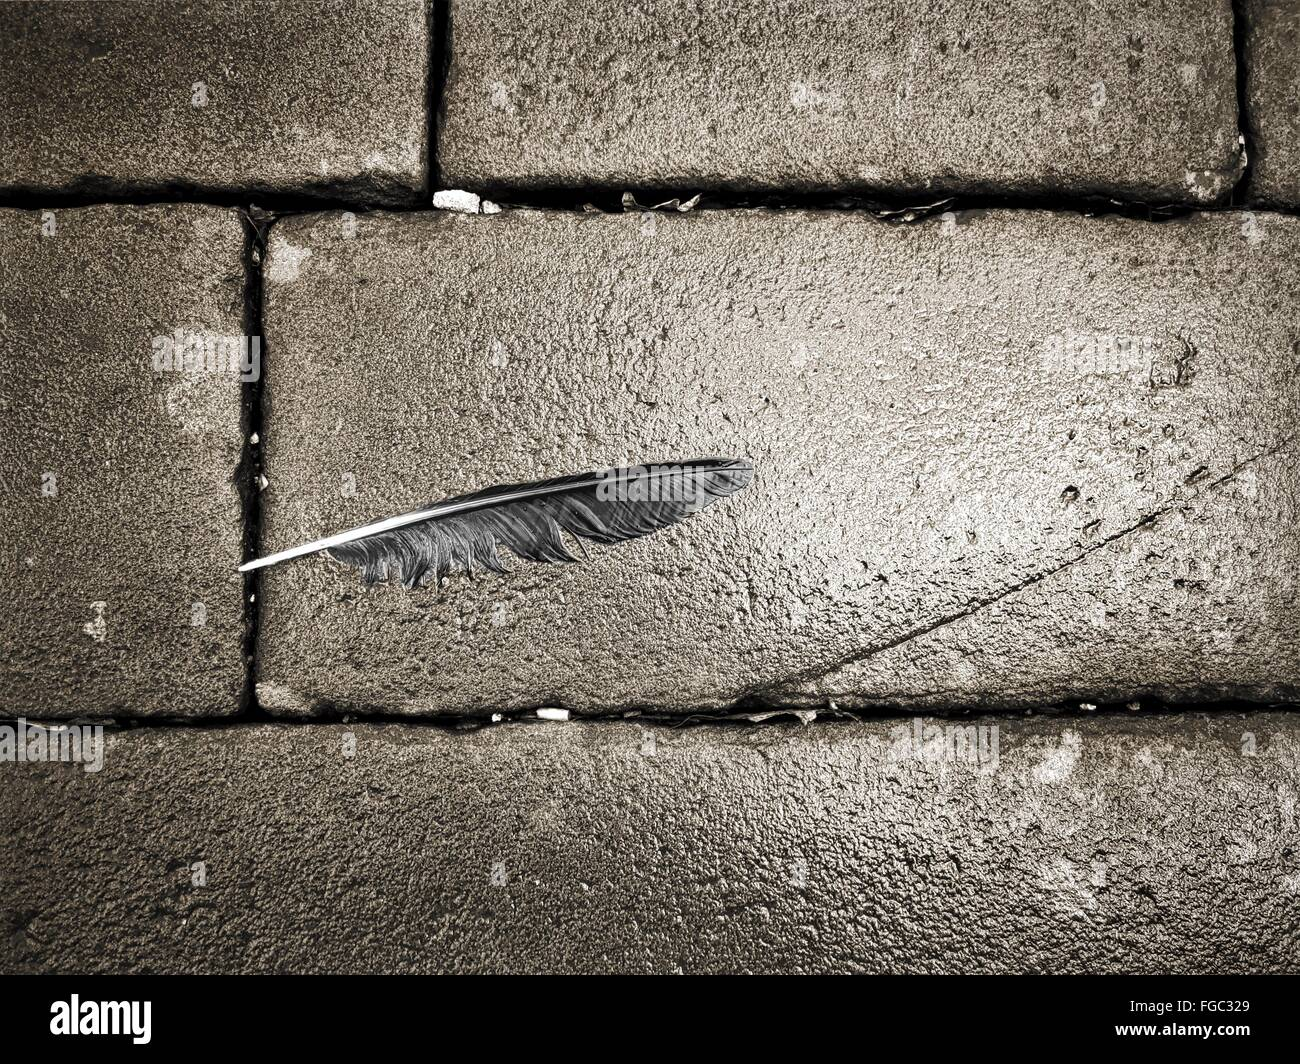 High Angle View Of Feather On Wet Street - Stock Image